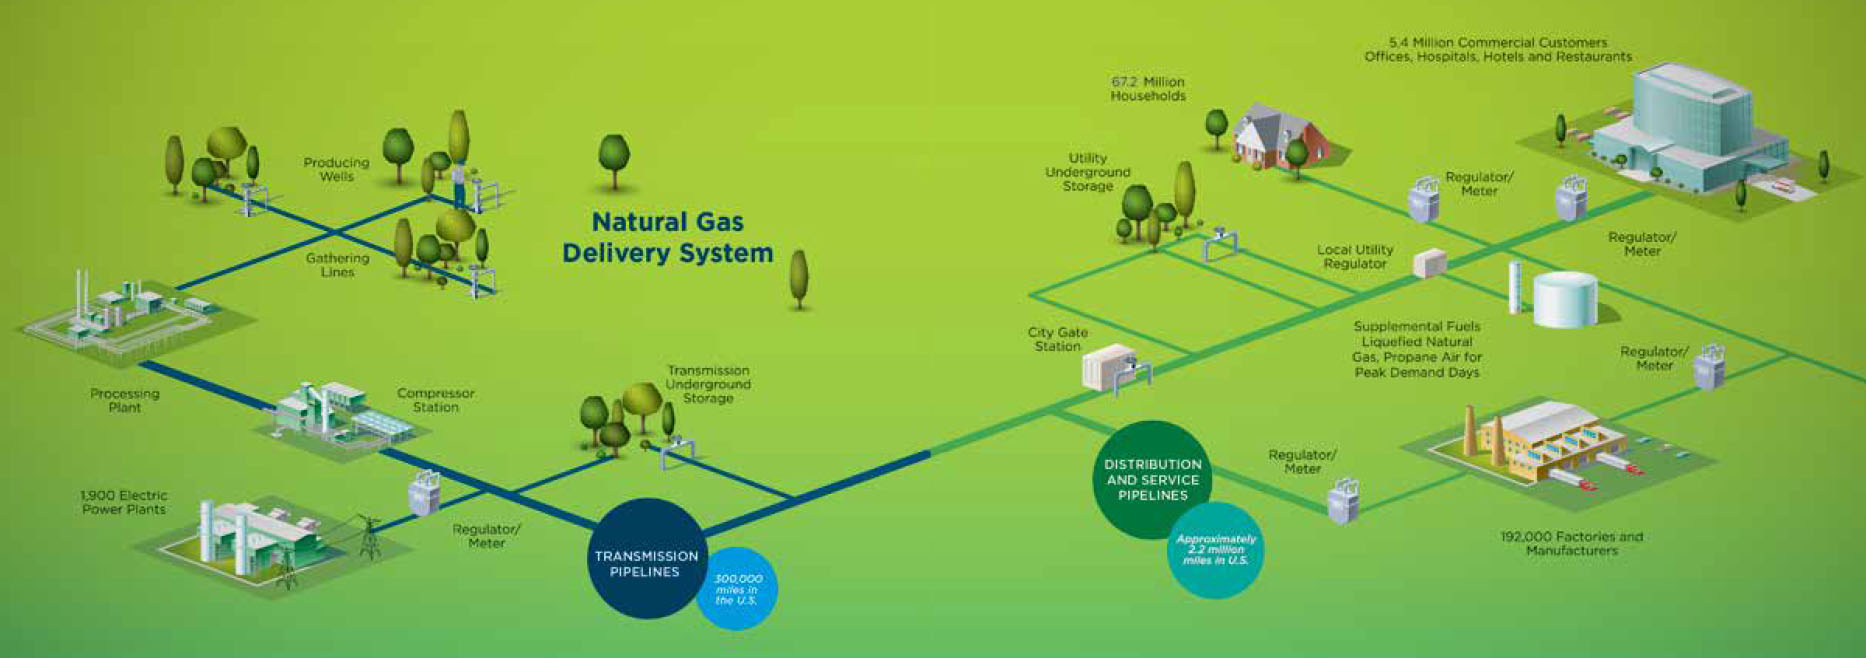 hight resolution of the natural gas delivery system includes production wells the transmission lines that move gas to